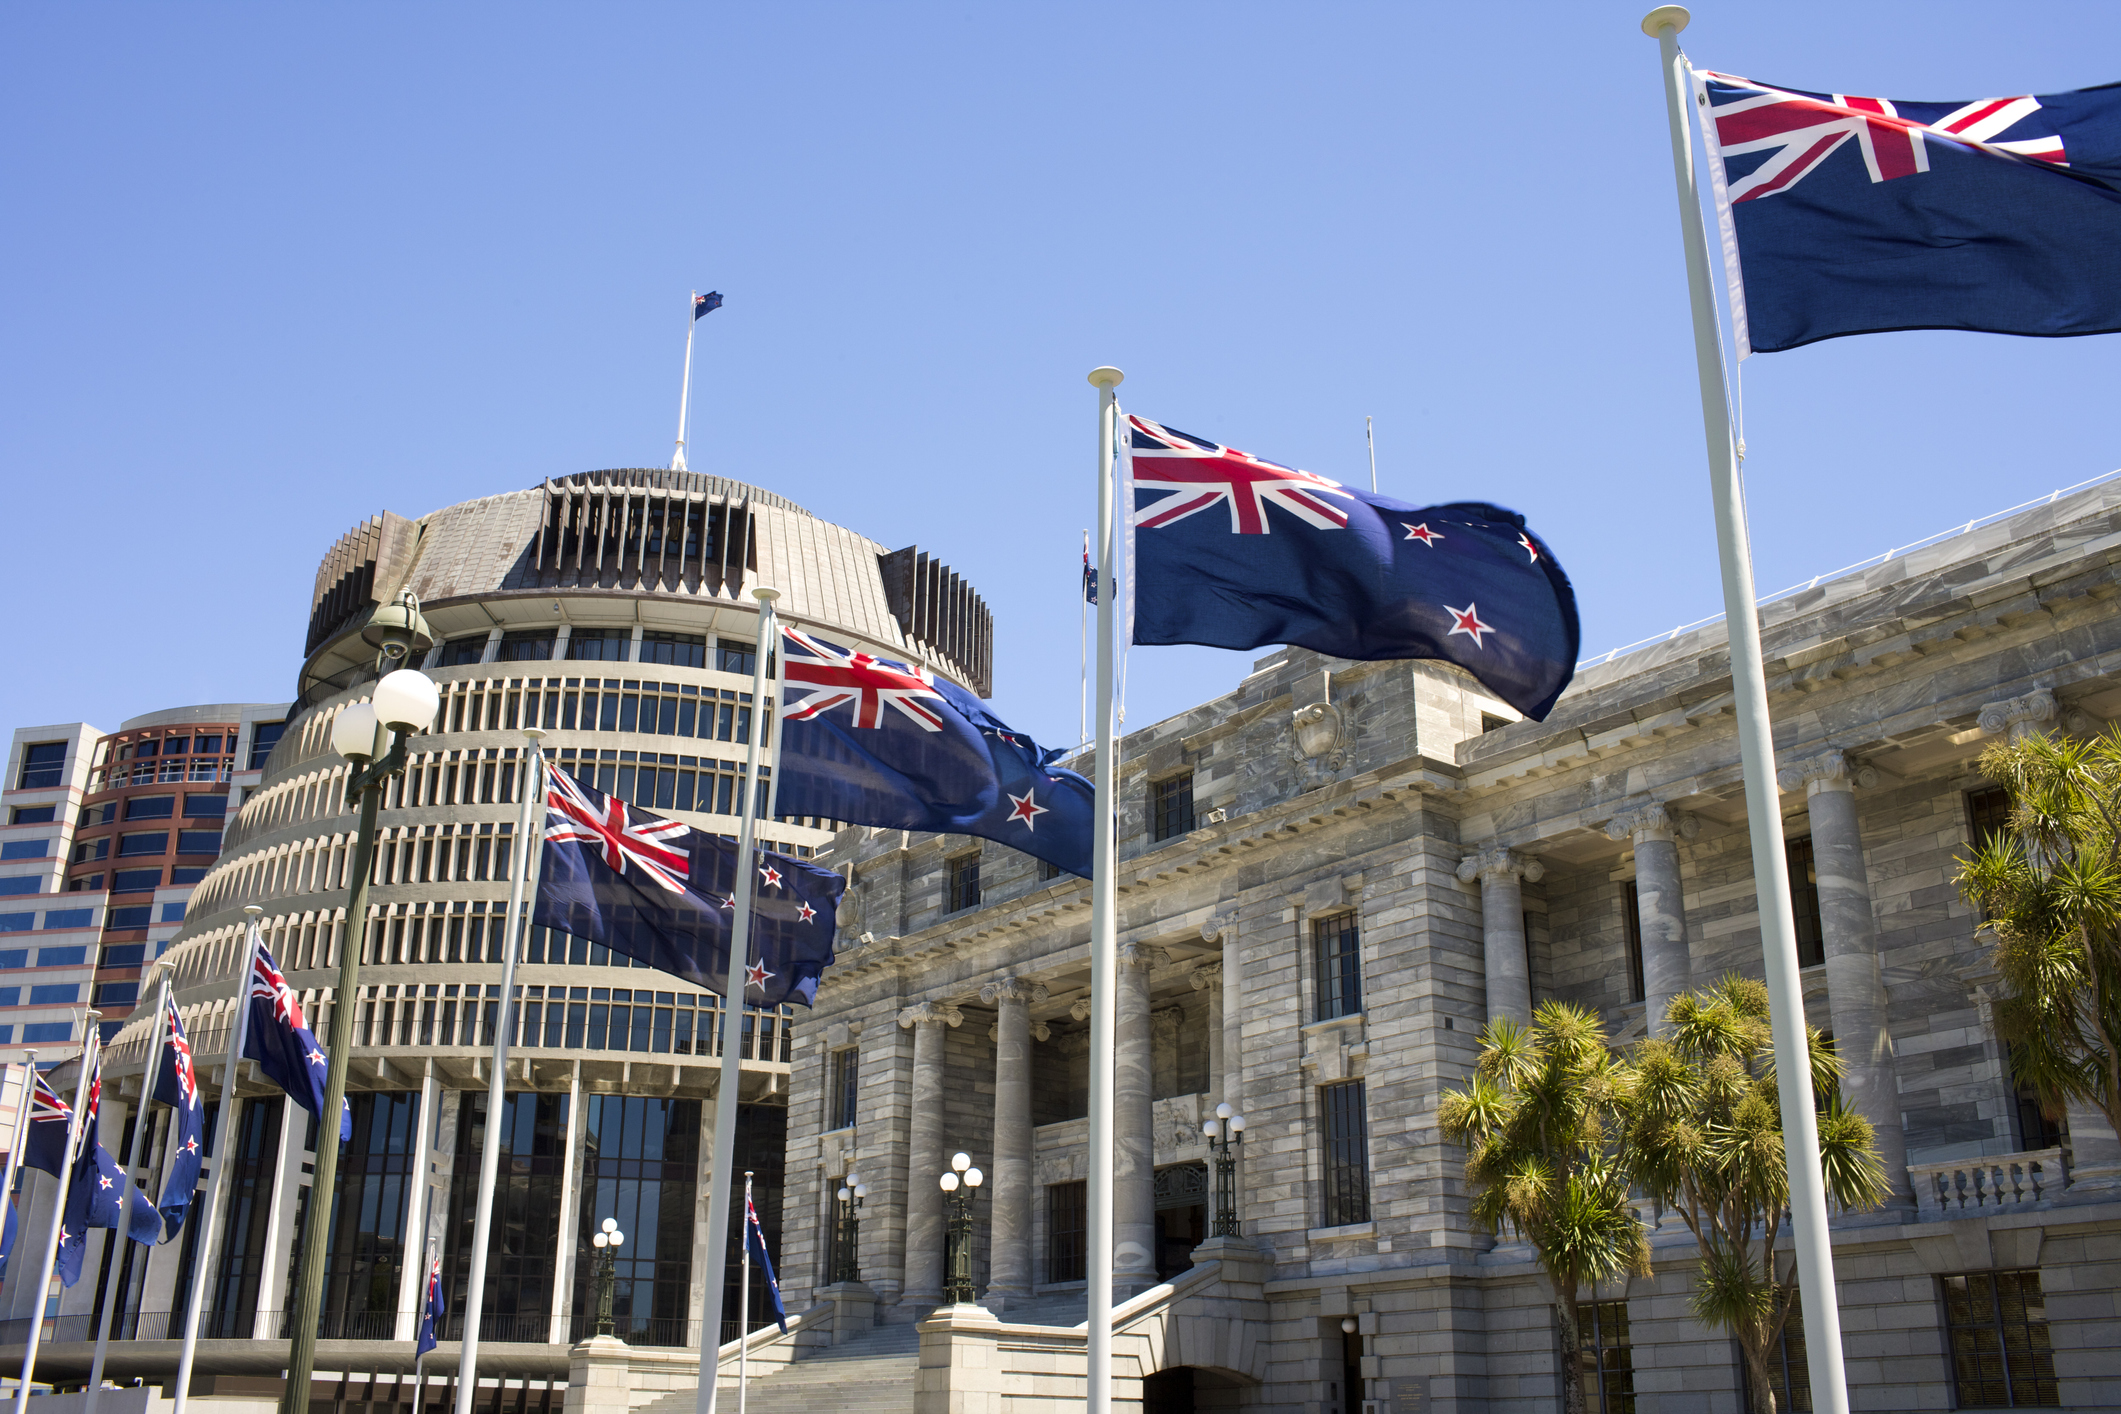 New Zealand flags fly in front of Parliament buildings in Wellington.